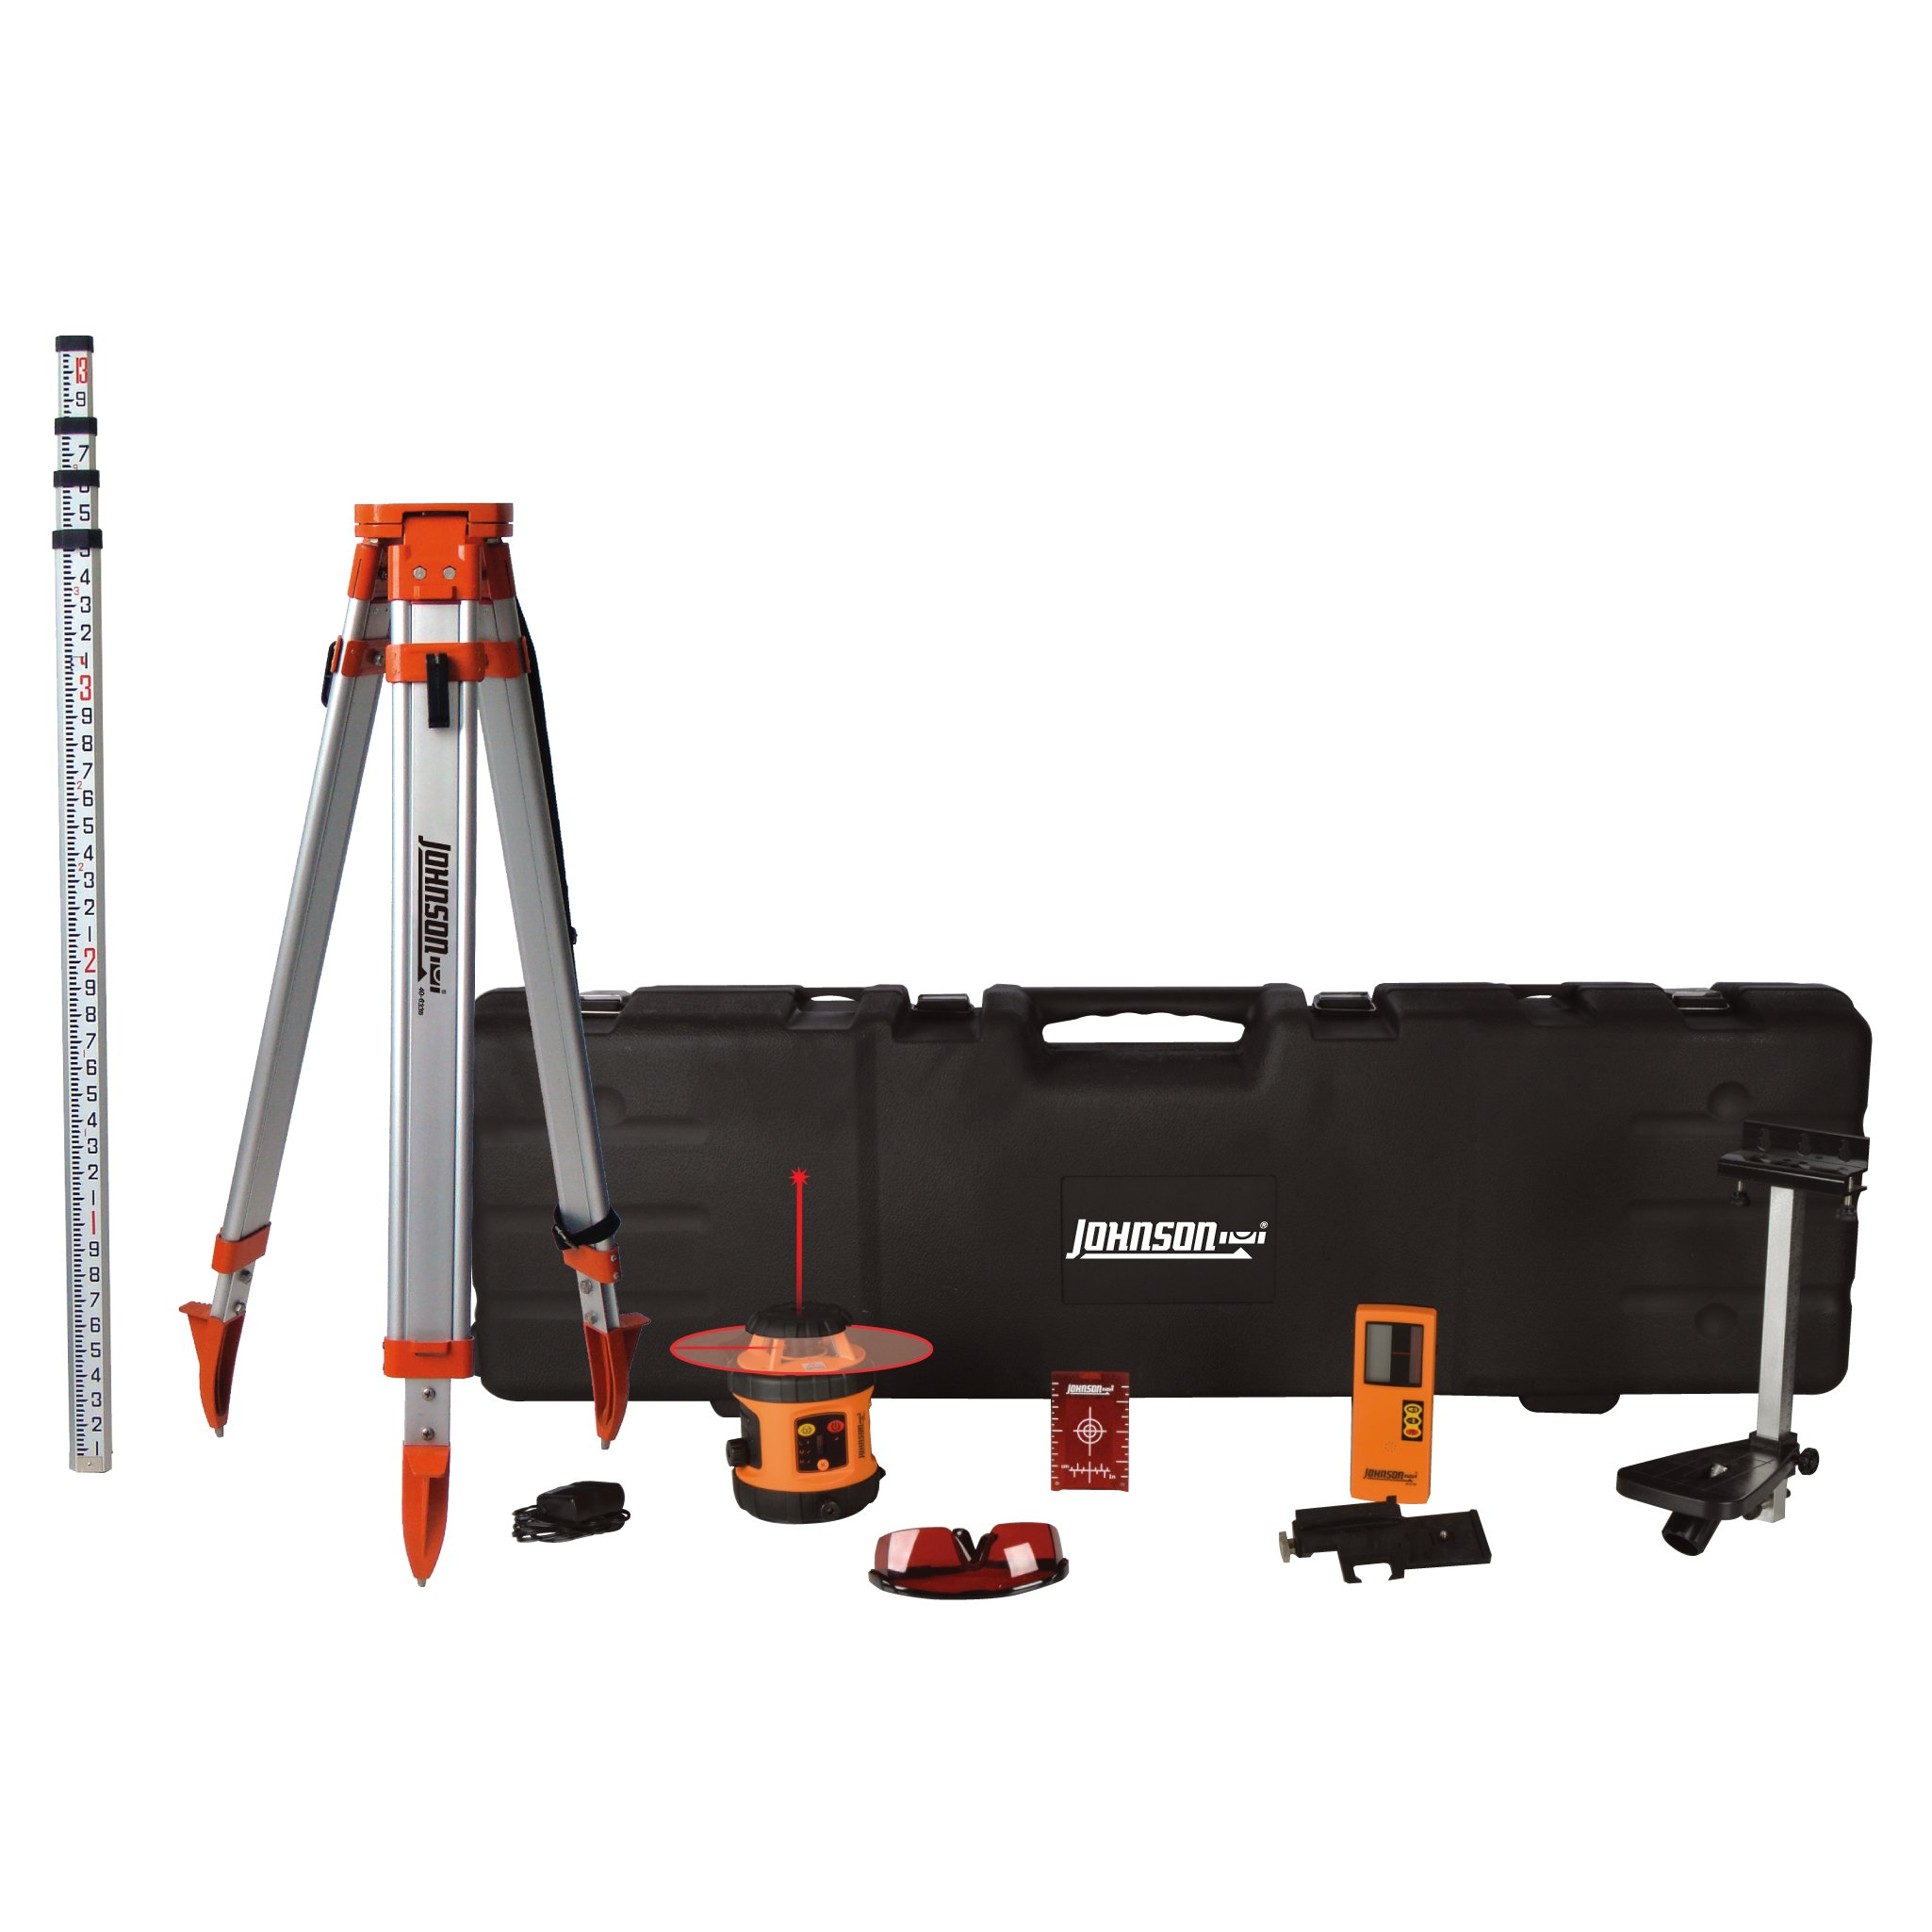 Johnson Level & Tool 99-026K Self-Leveling Rotary Laser System